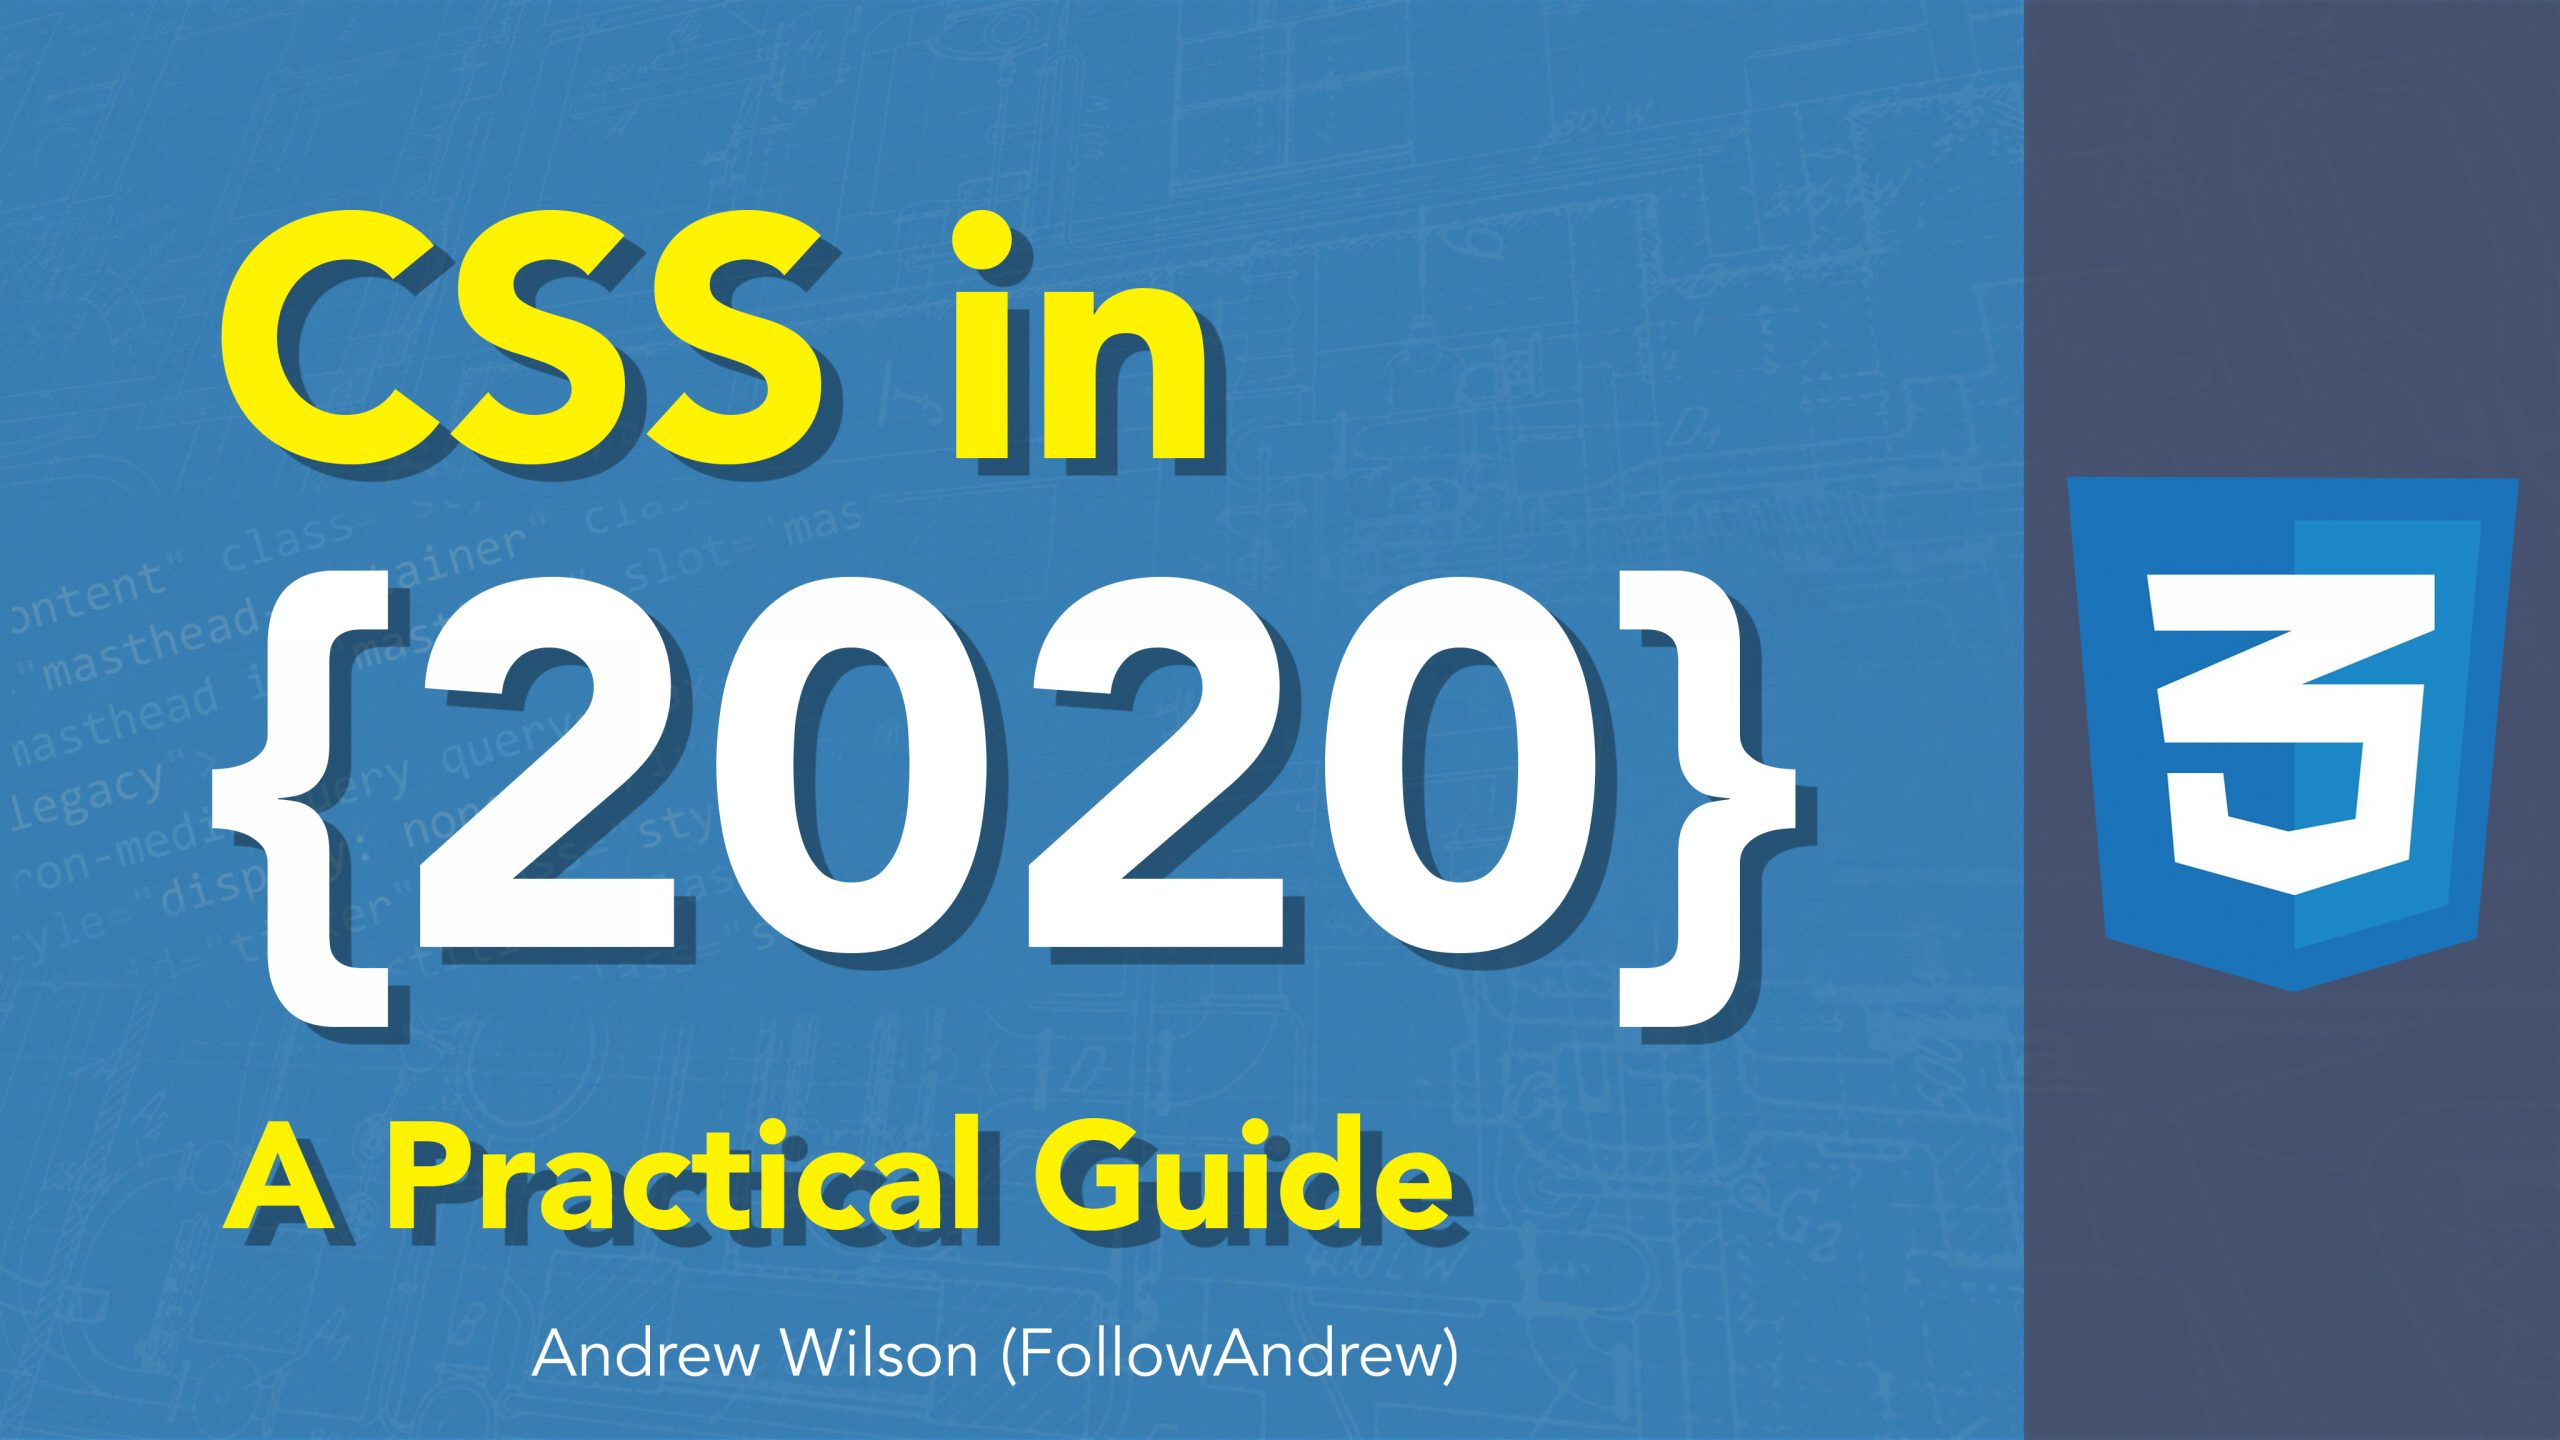 CSS in 2020